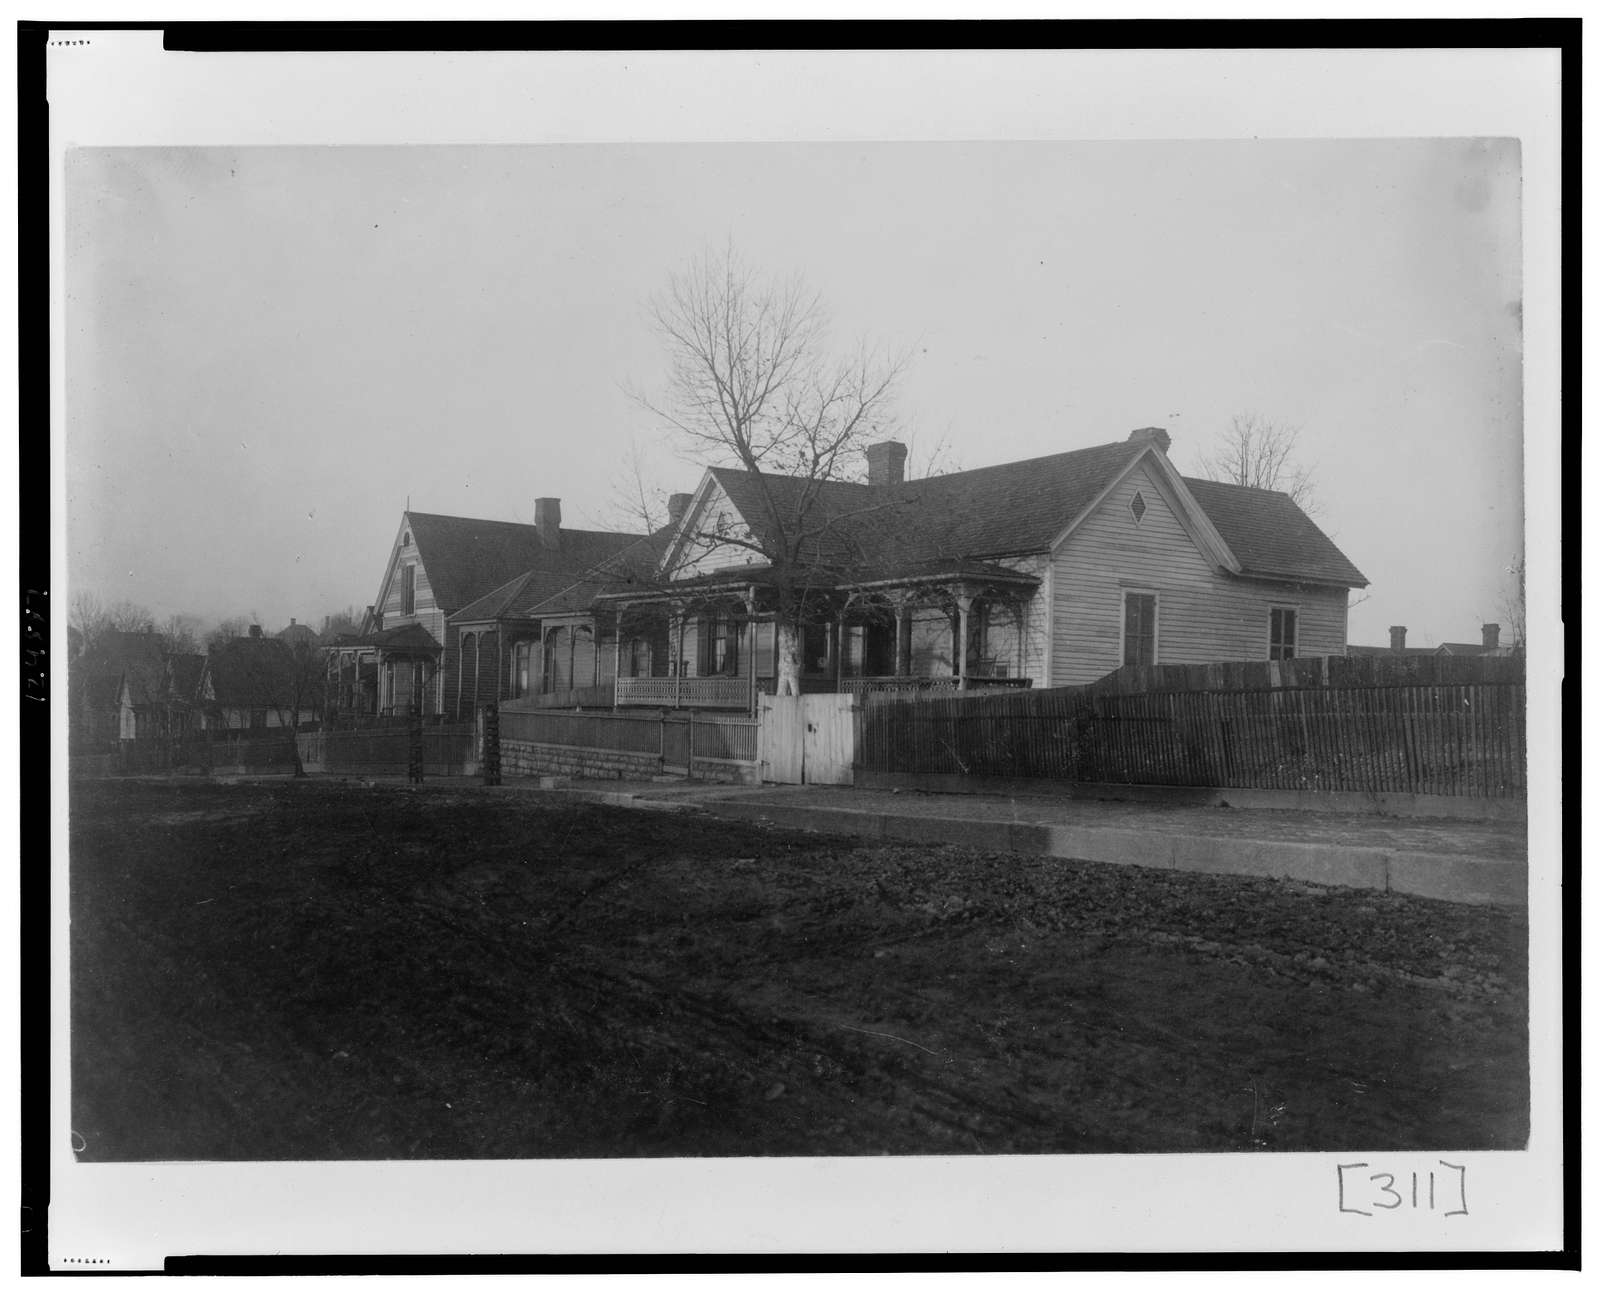 [Exterior view of houses in Georgia]